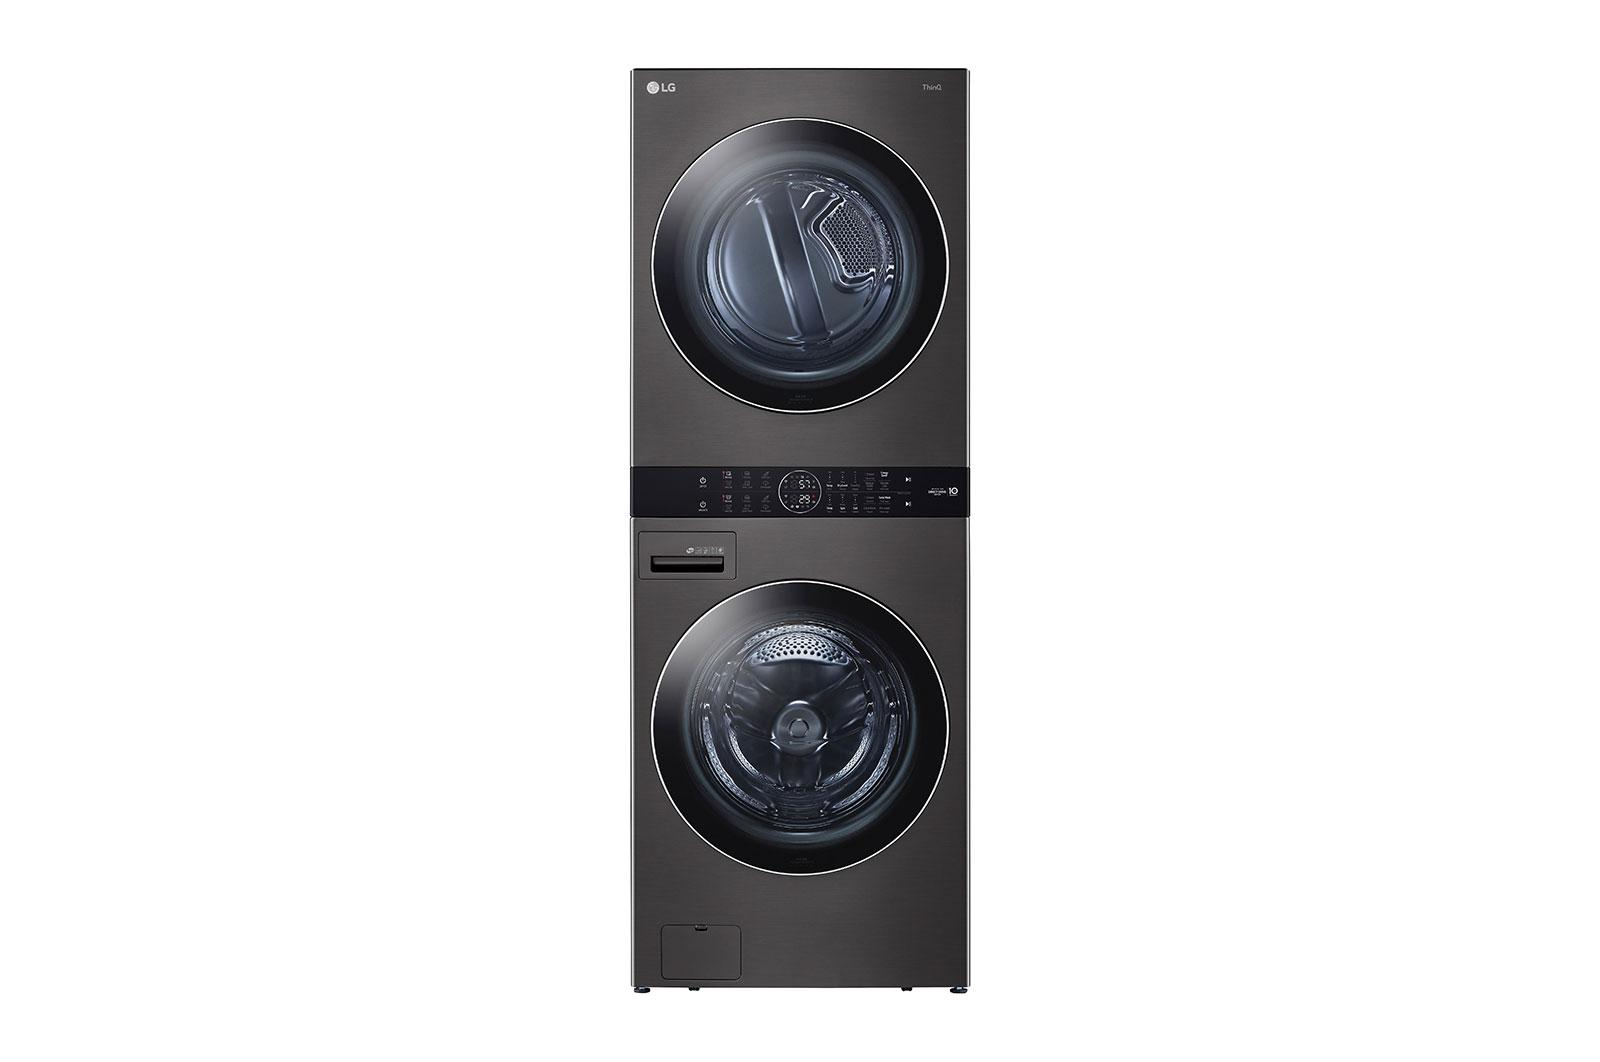 LG AppliancesSingle Unit Front Load Lg Washtower™ With Center Control™ 4.5 Cu. Ft. Washer And 7.4 Cu. Ft. Gas Dryer